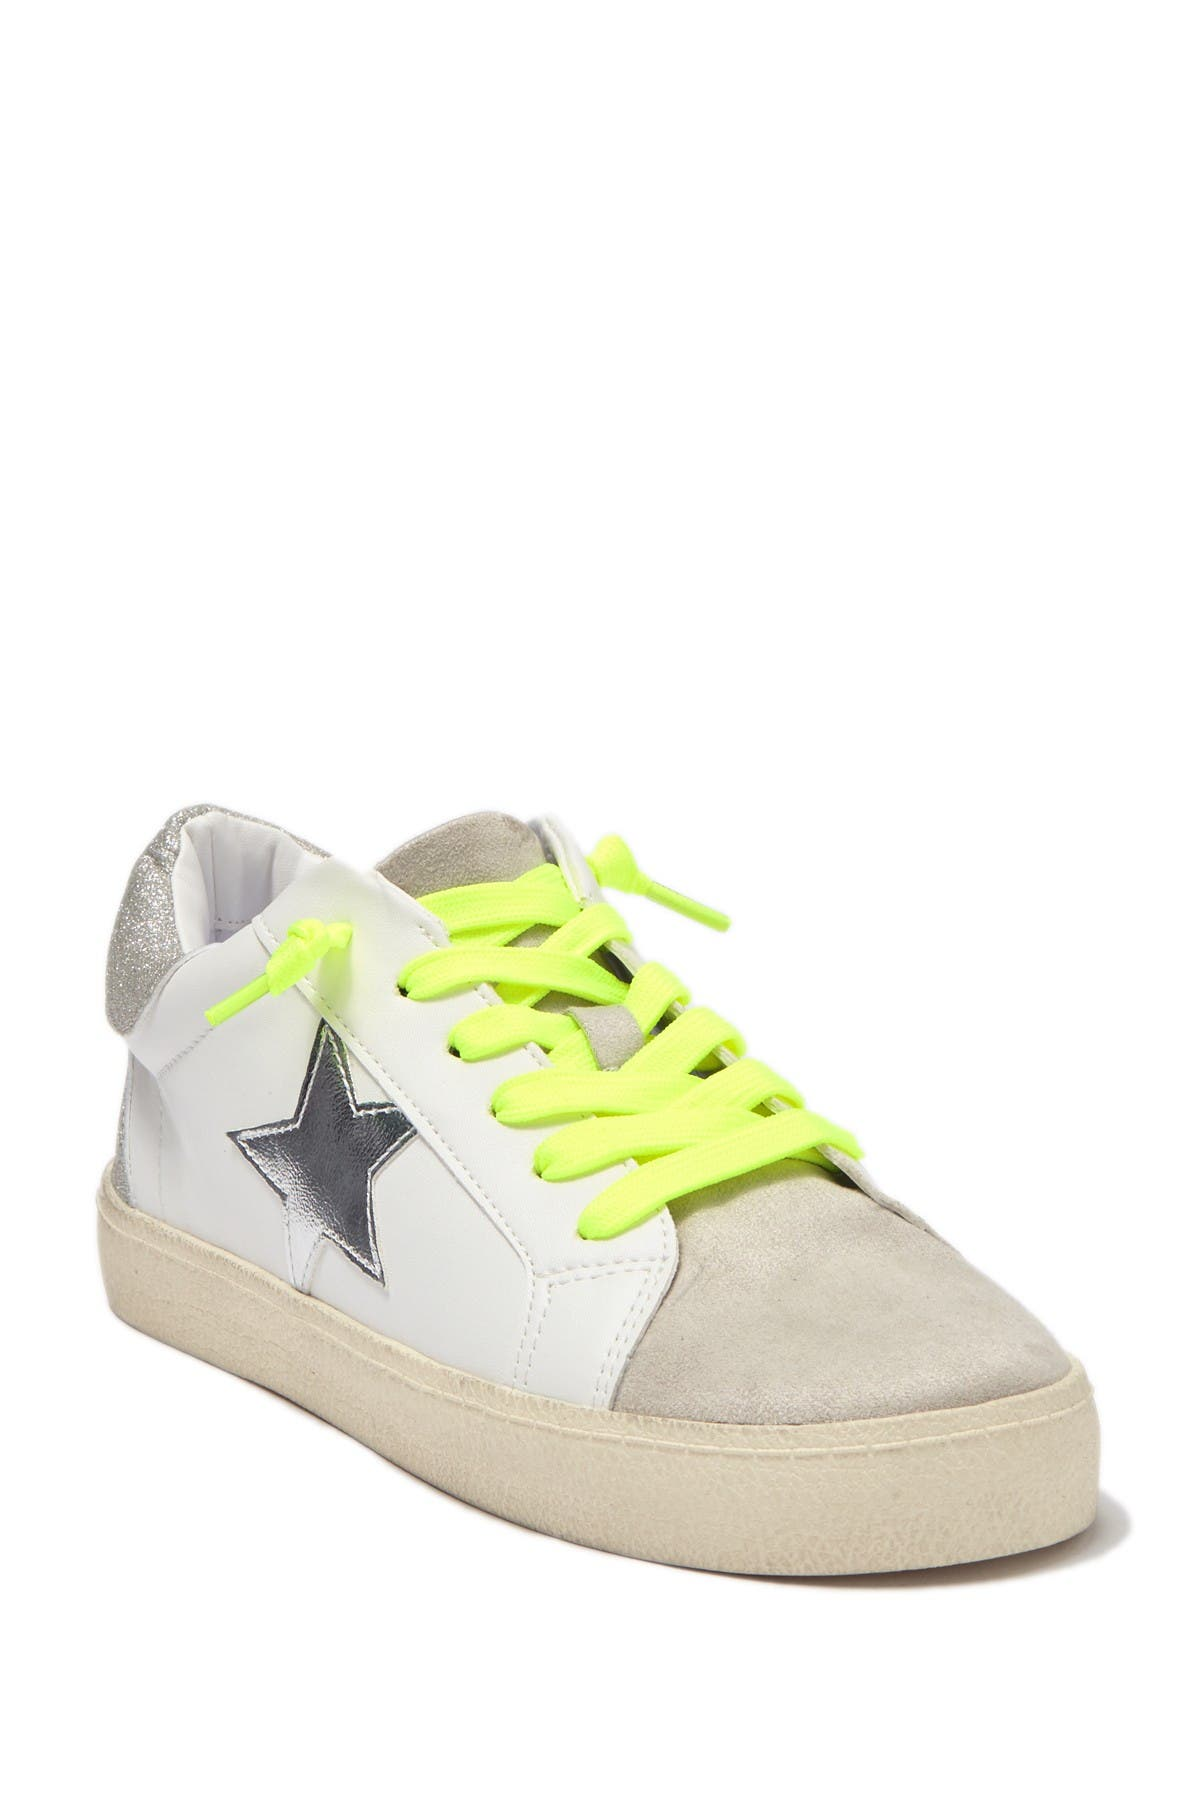 Madden Girl   Linlee Lace-Up Sneaker